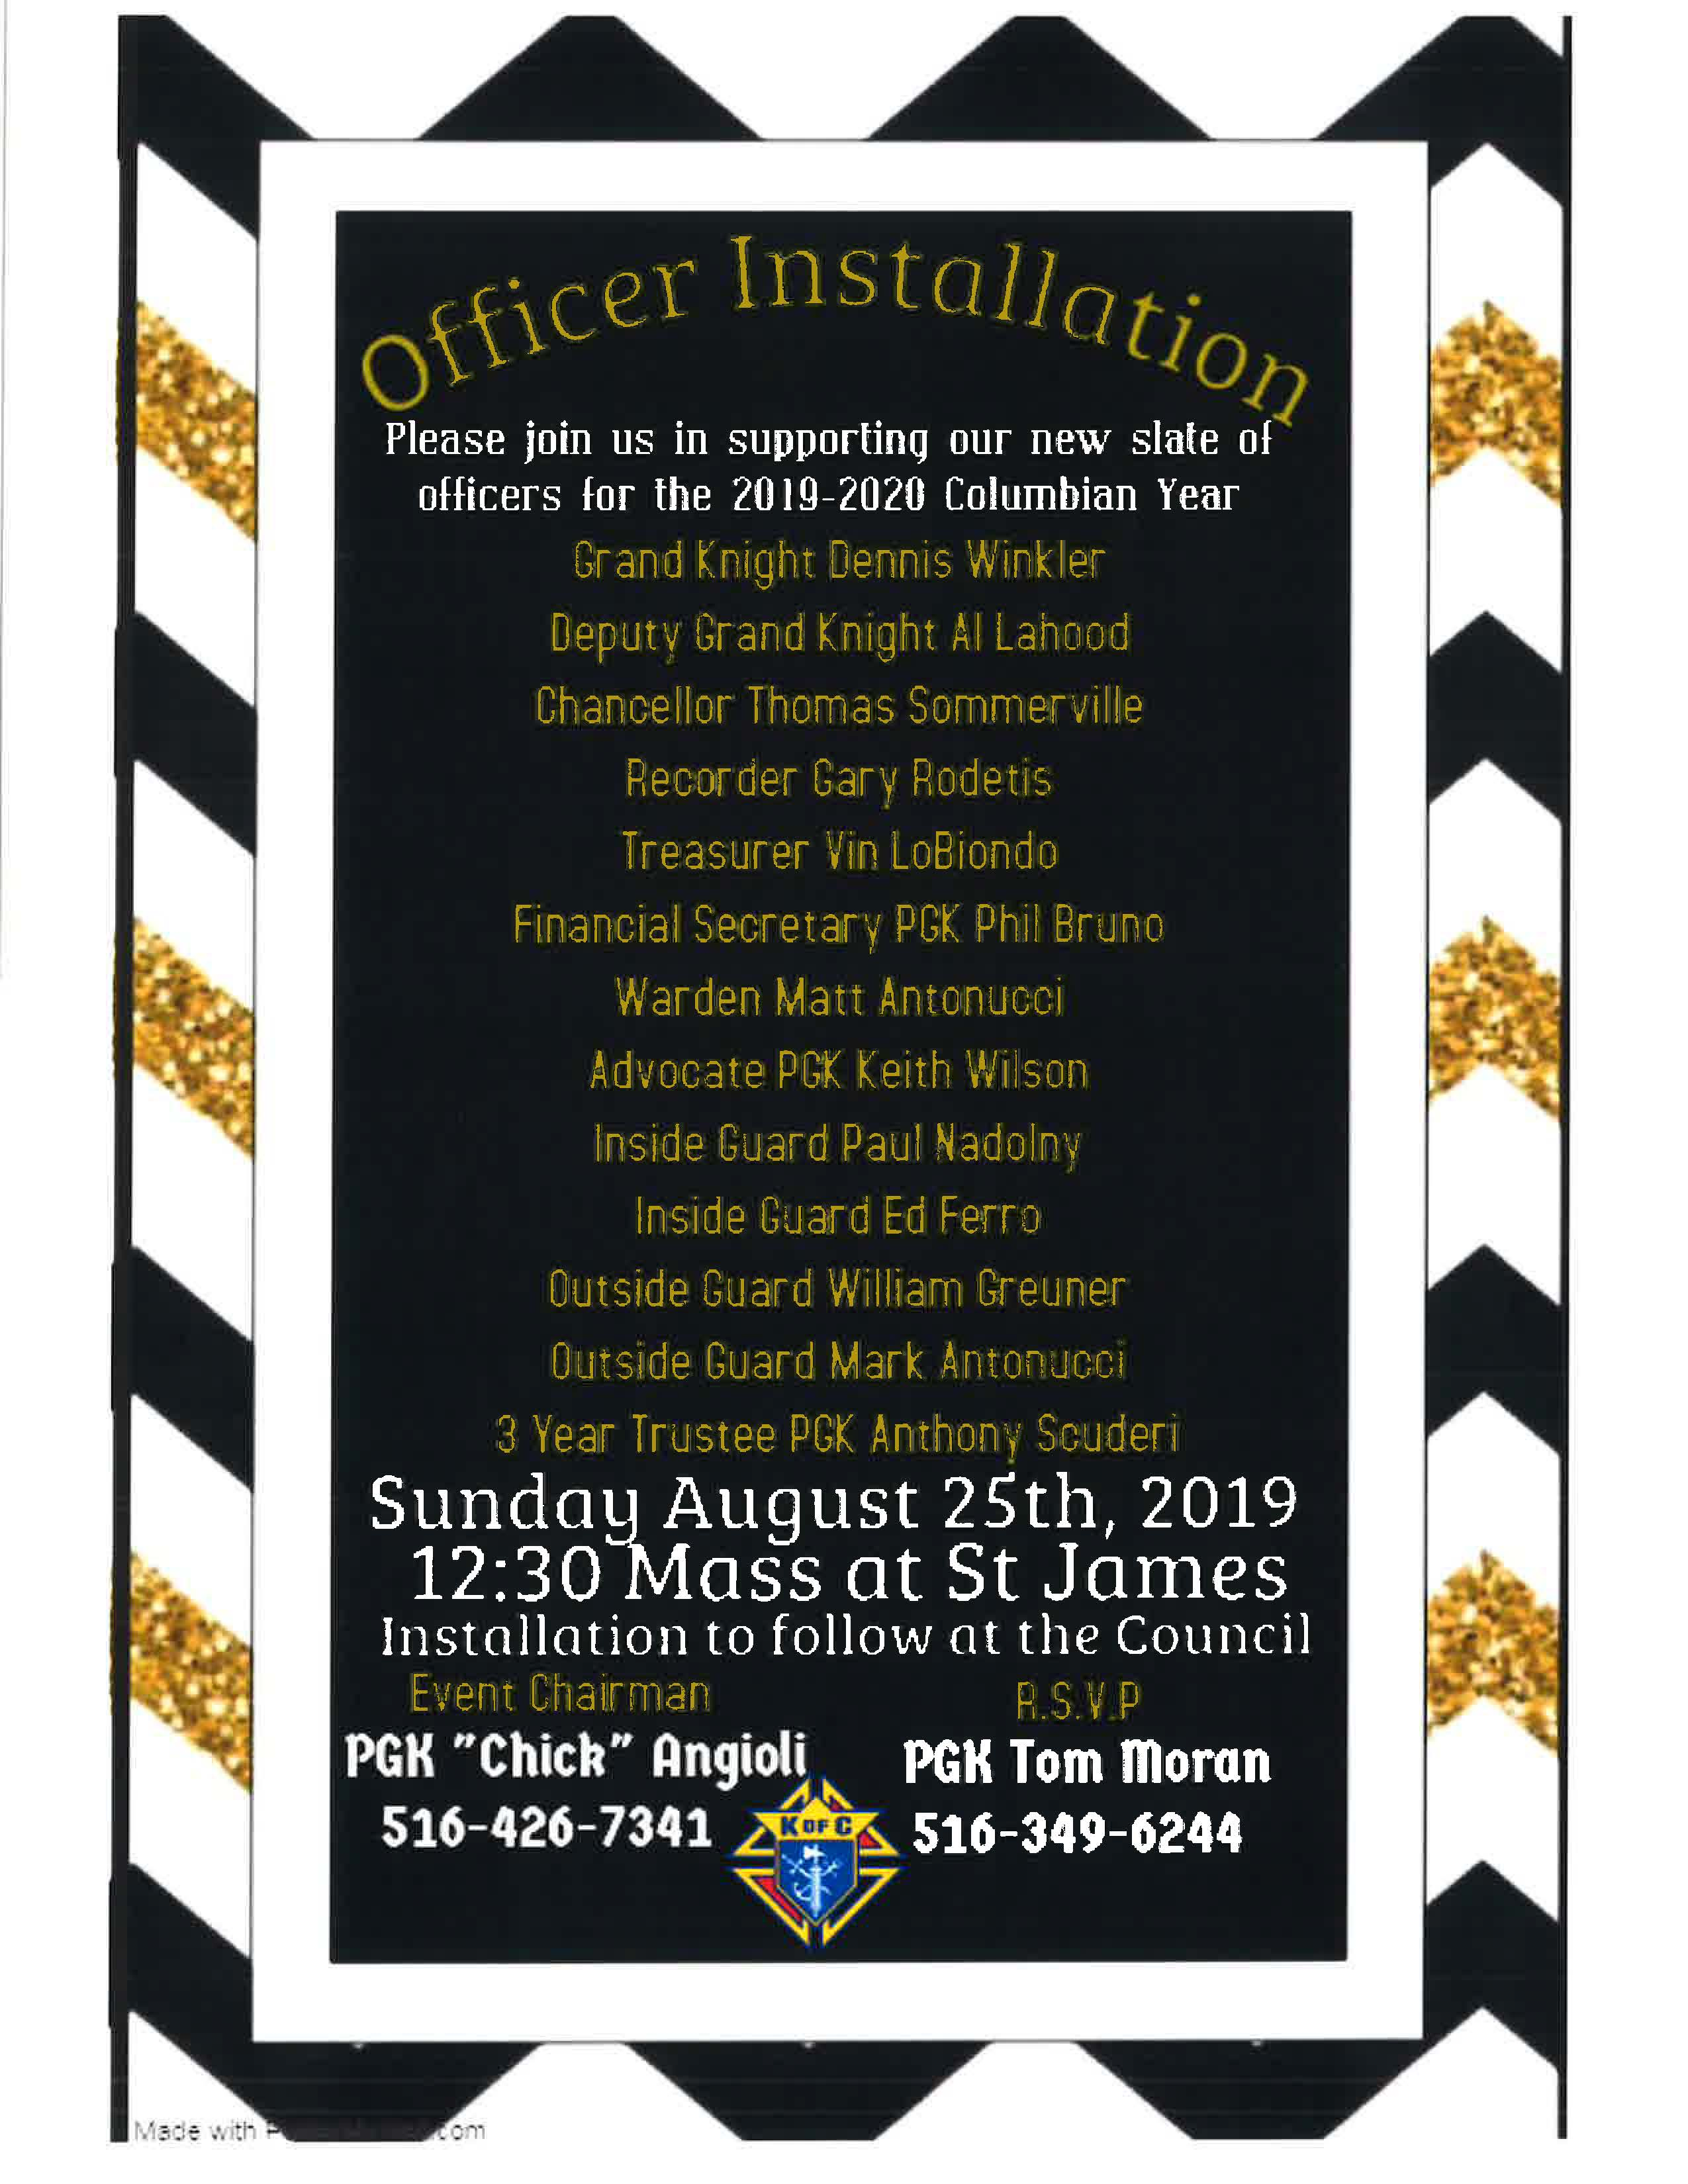 Officer Installation 2019